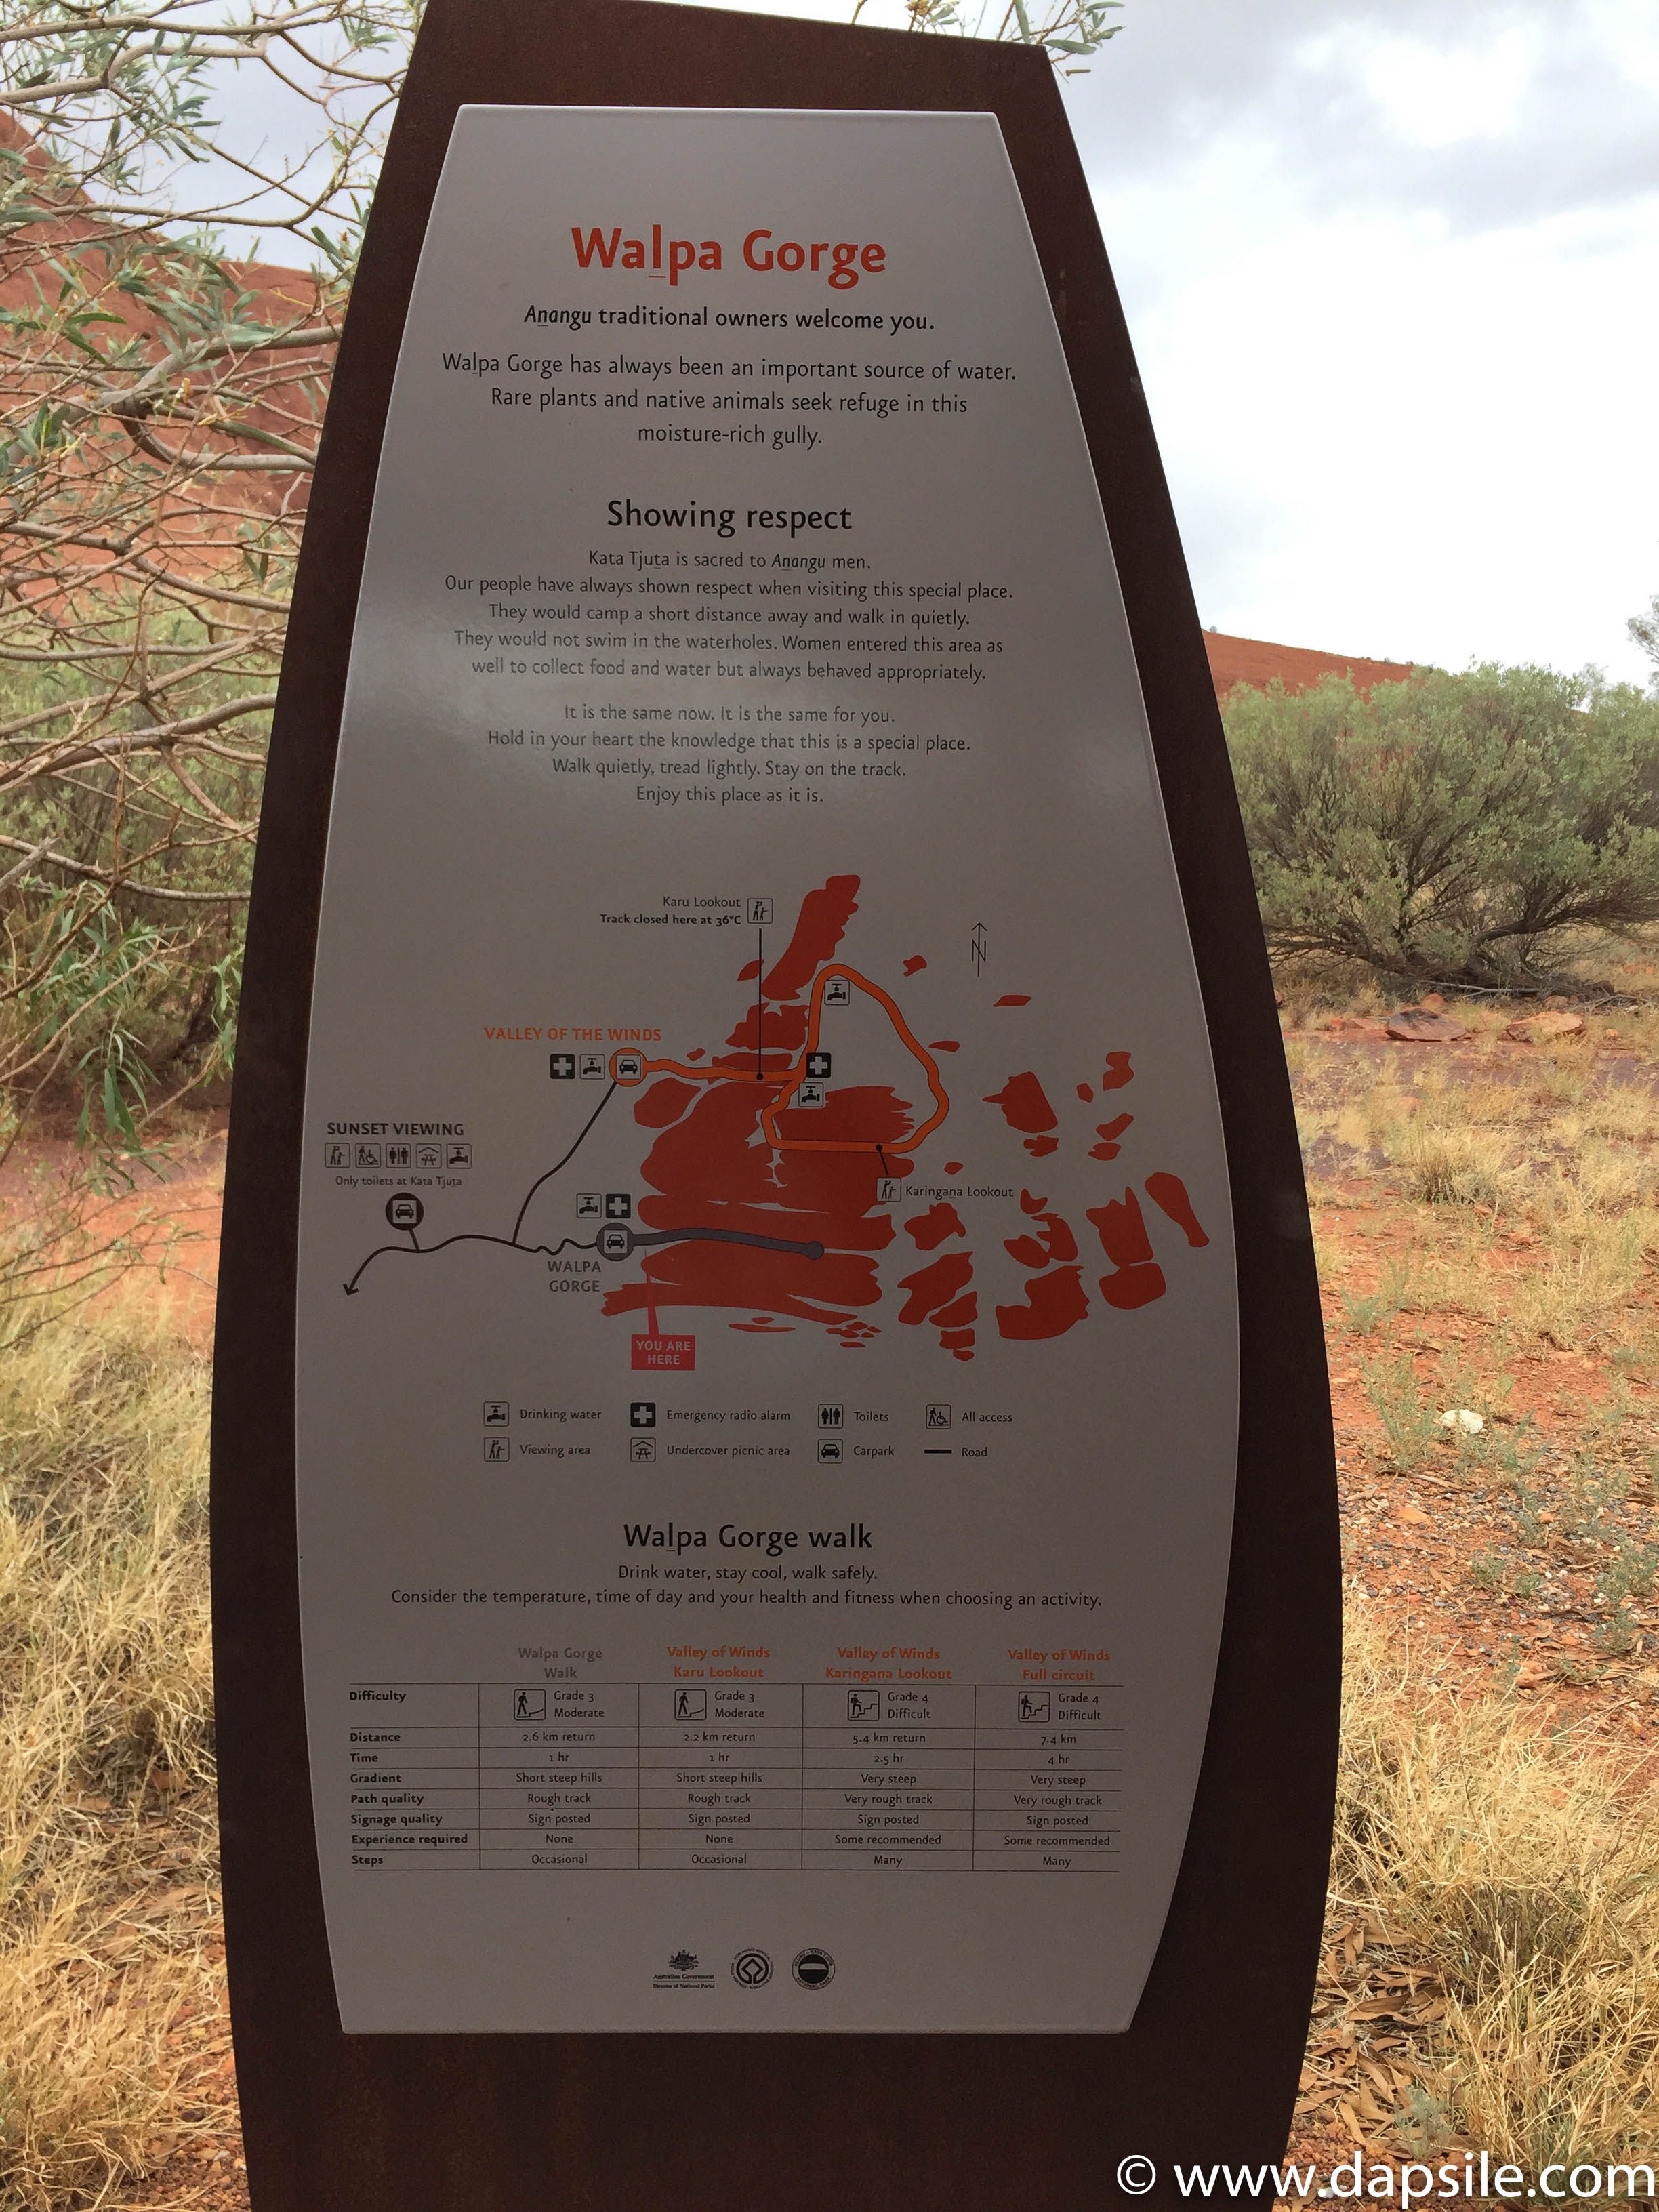 Walpa Gorge sign tour from Alice Springs to Uluru